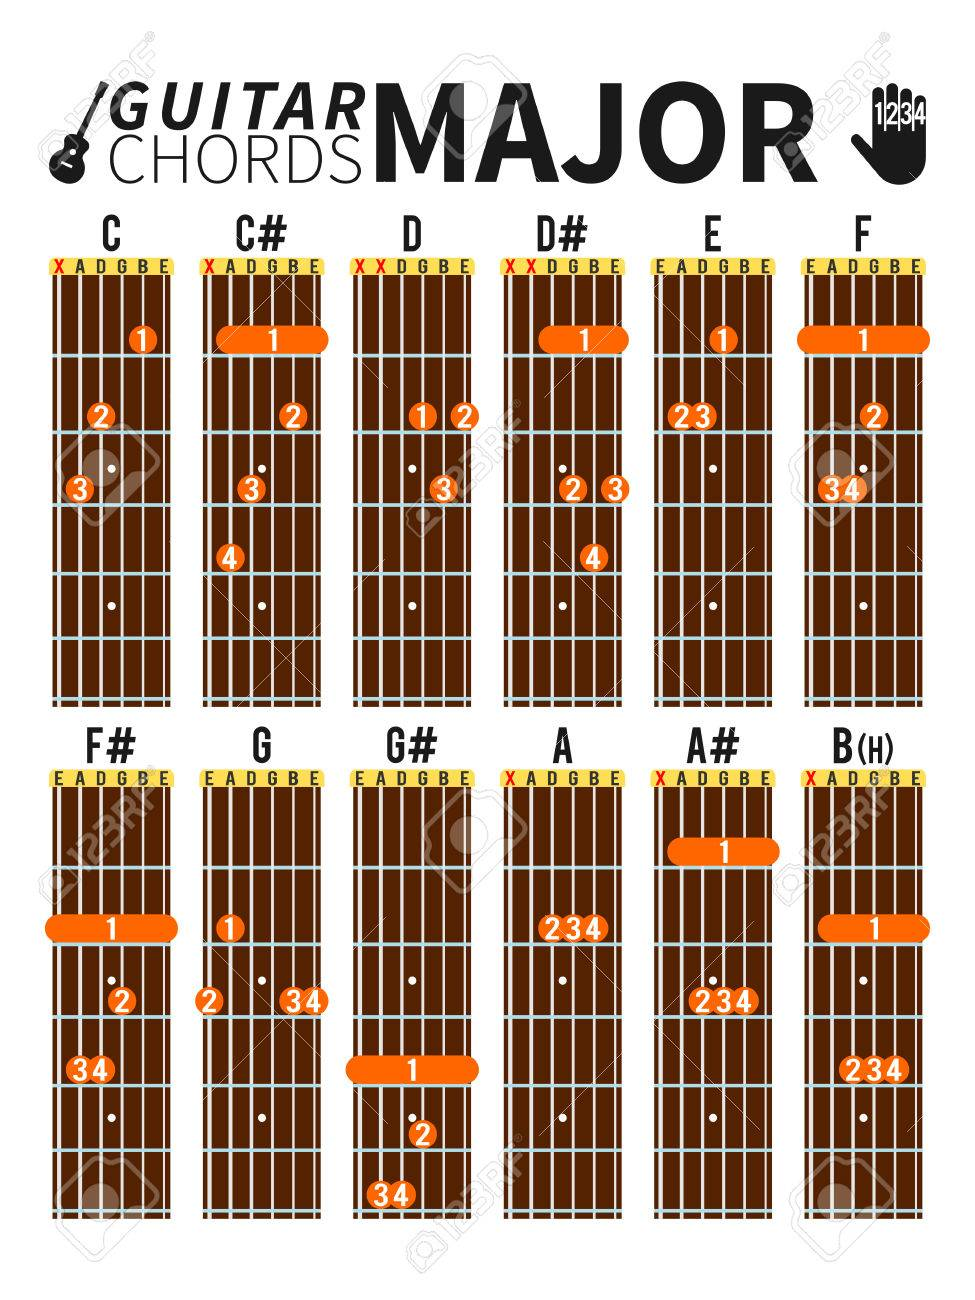 Colorful Major Chords Chart For Guitar With Fingers Position Royalty